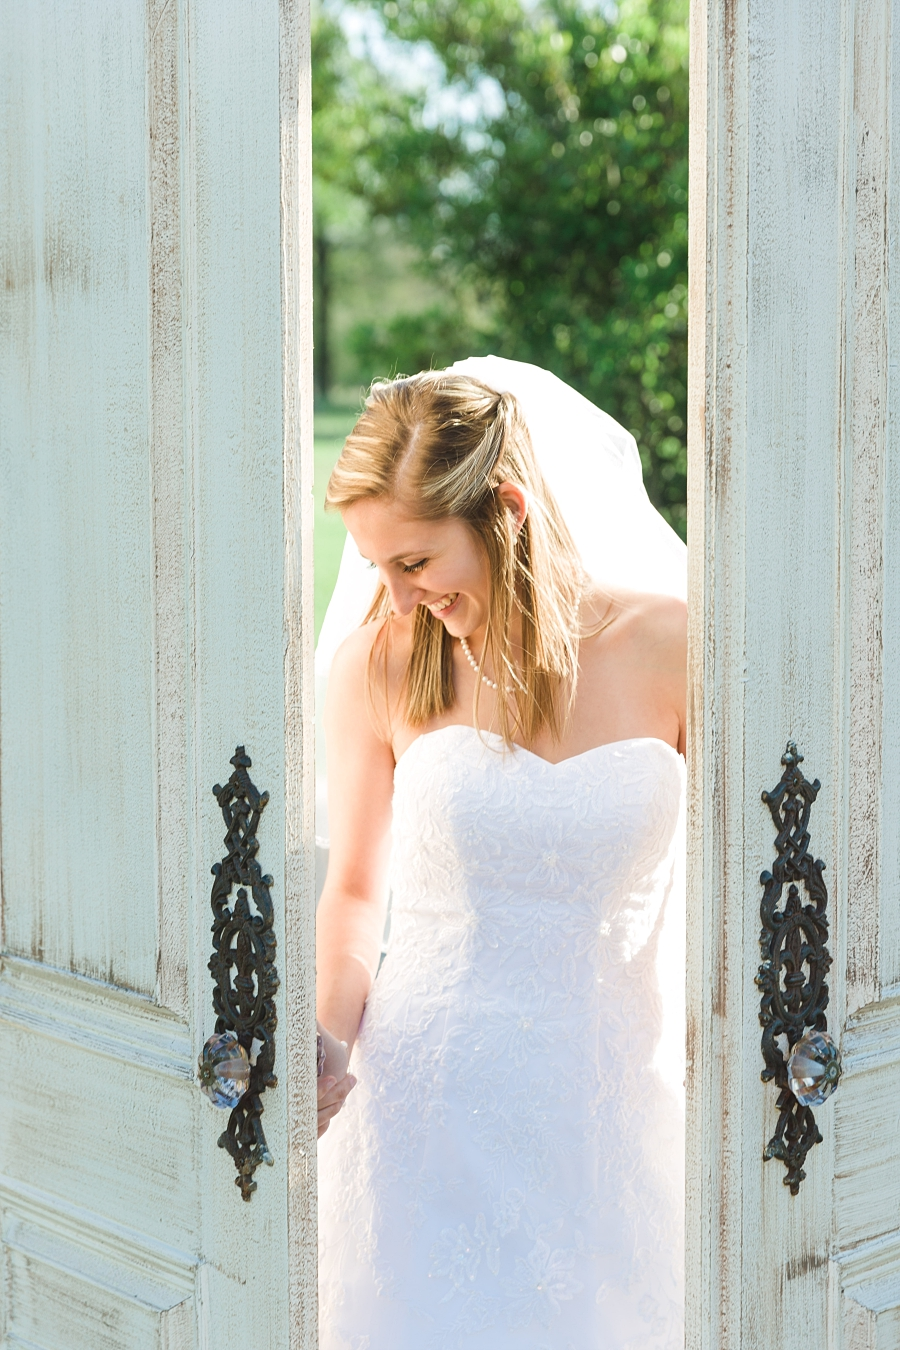 Stacy-Anderson-Photography-Carriage-House-Houston-Wedding-Photographer_0023.jpg